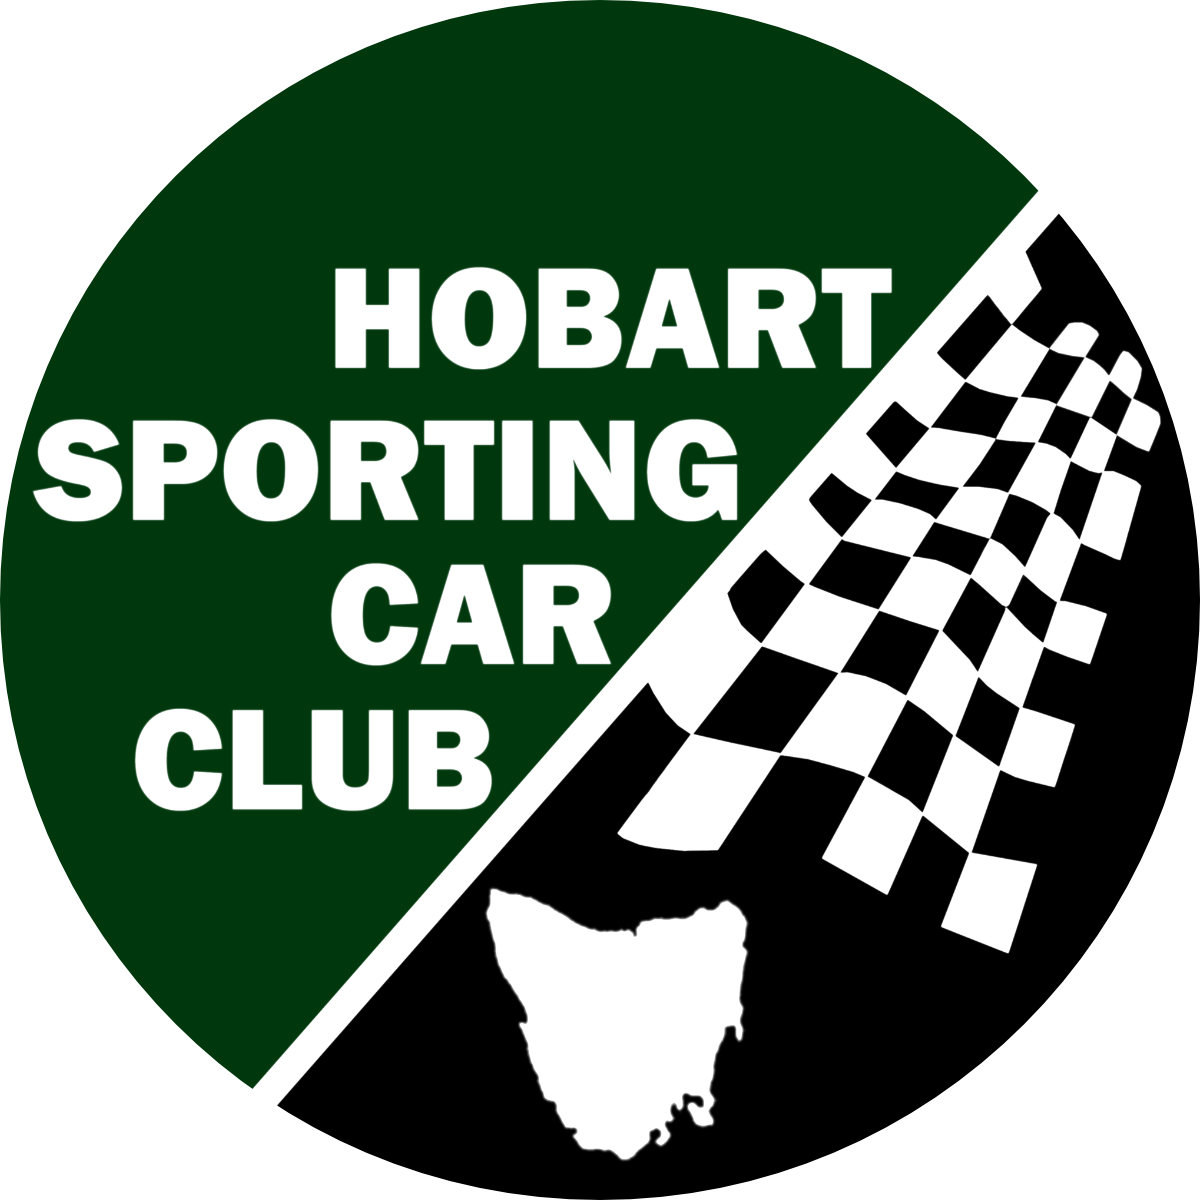 Hobart Sporting Car Club